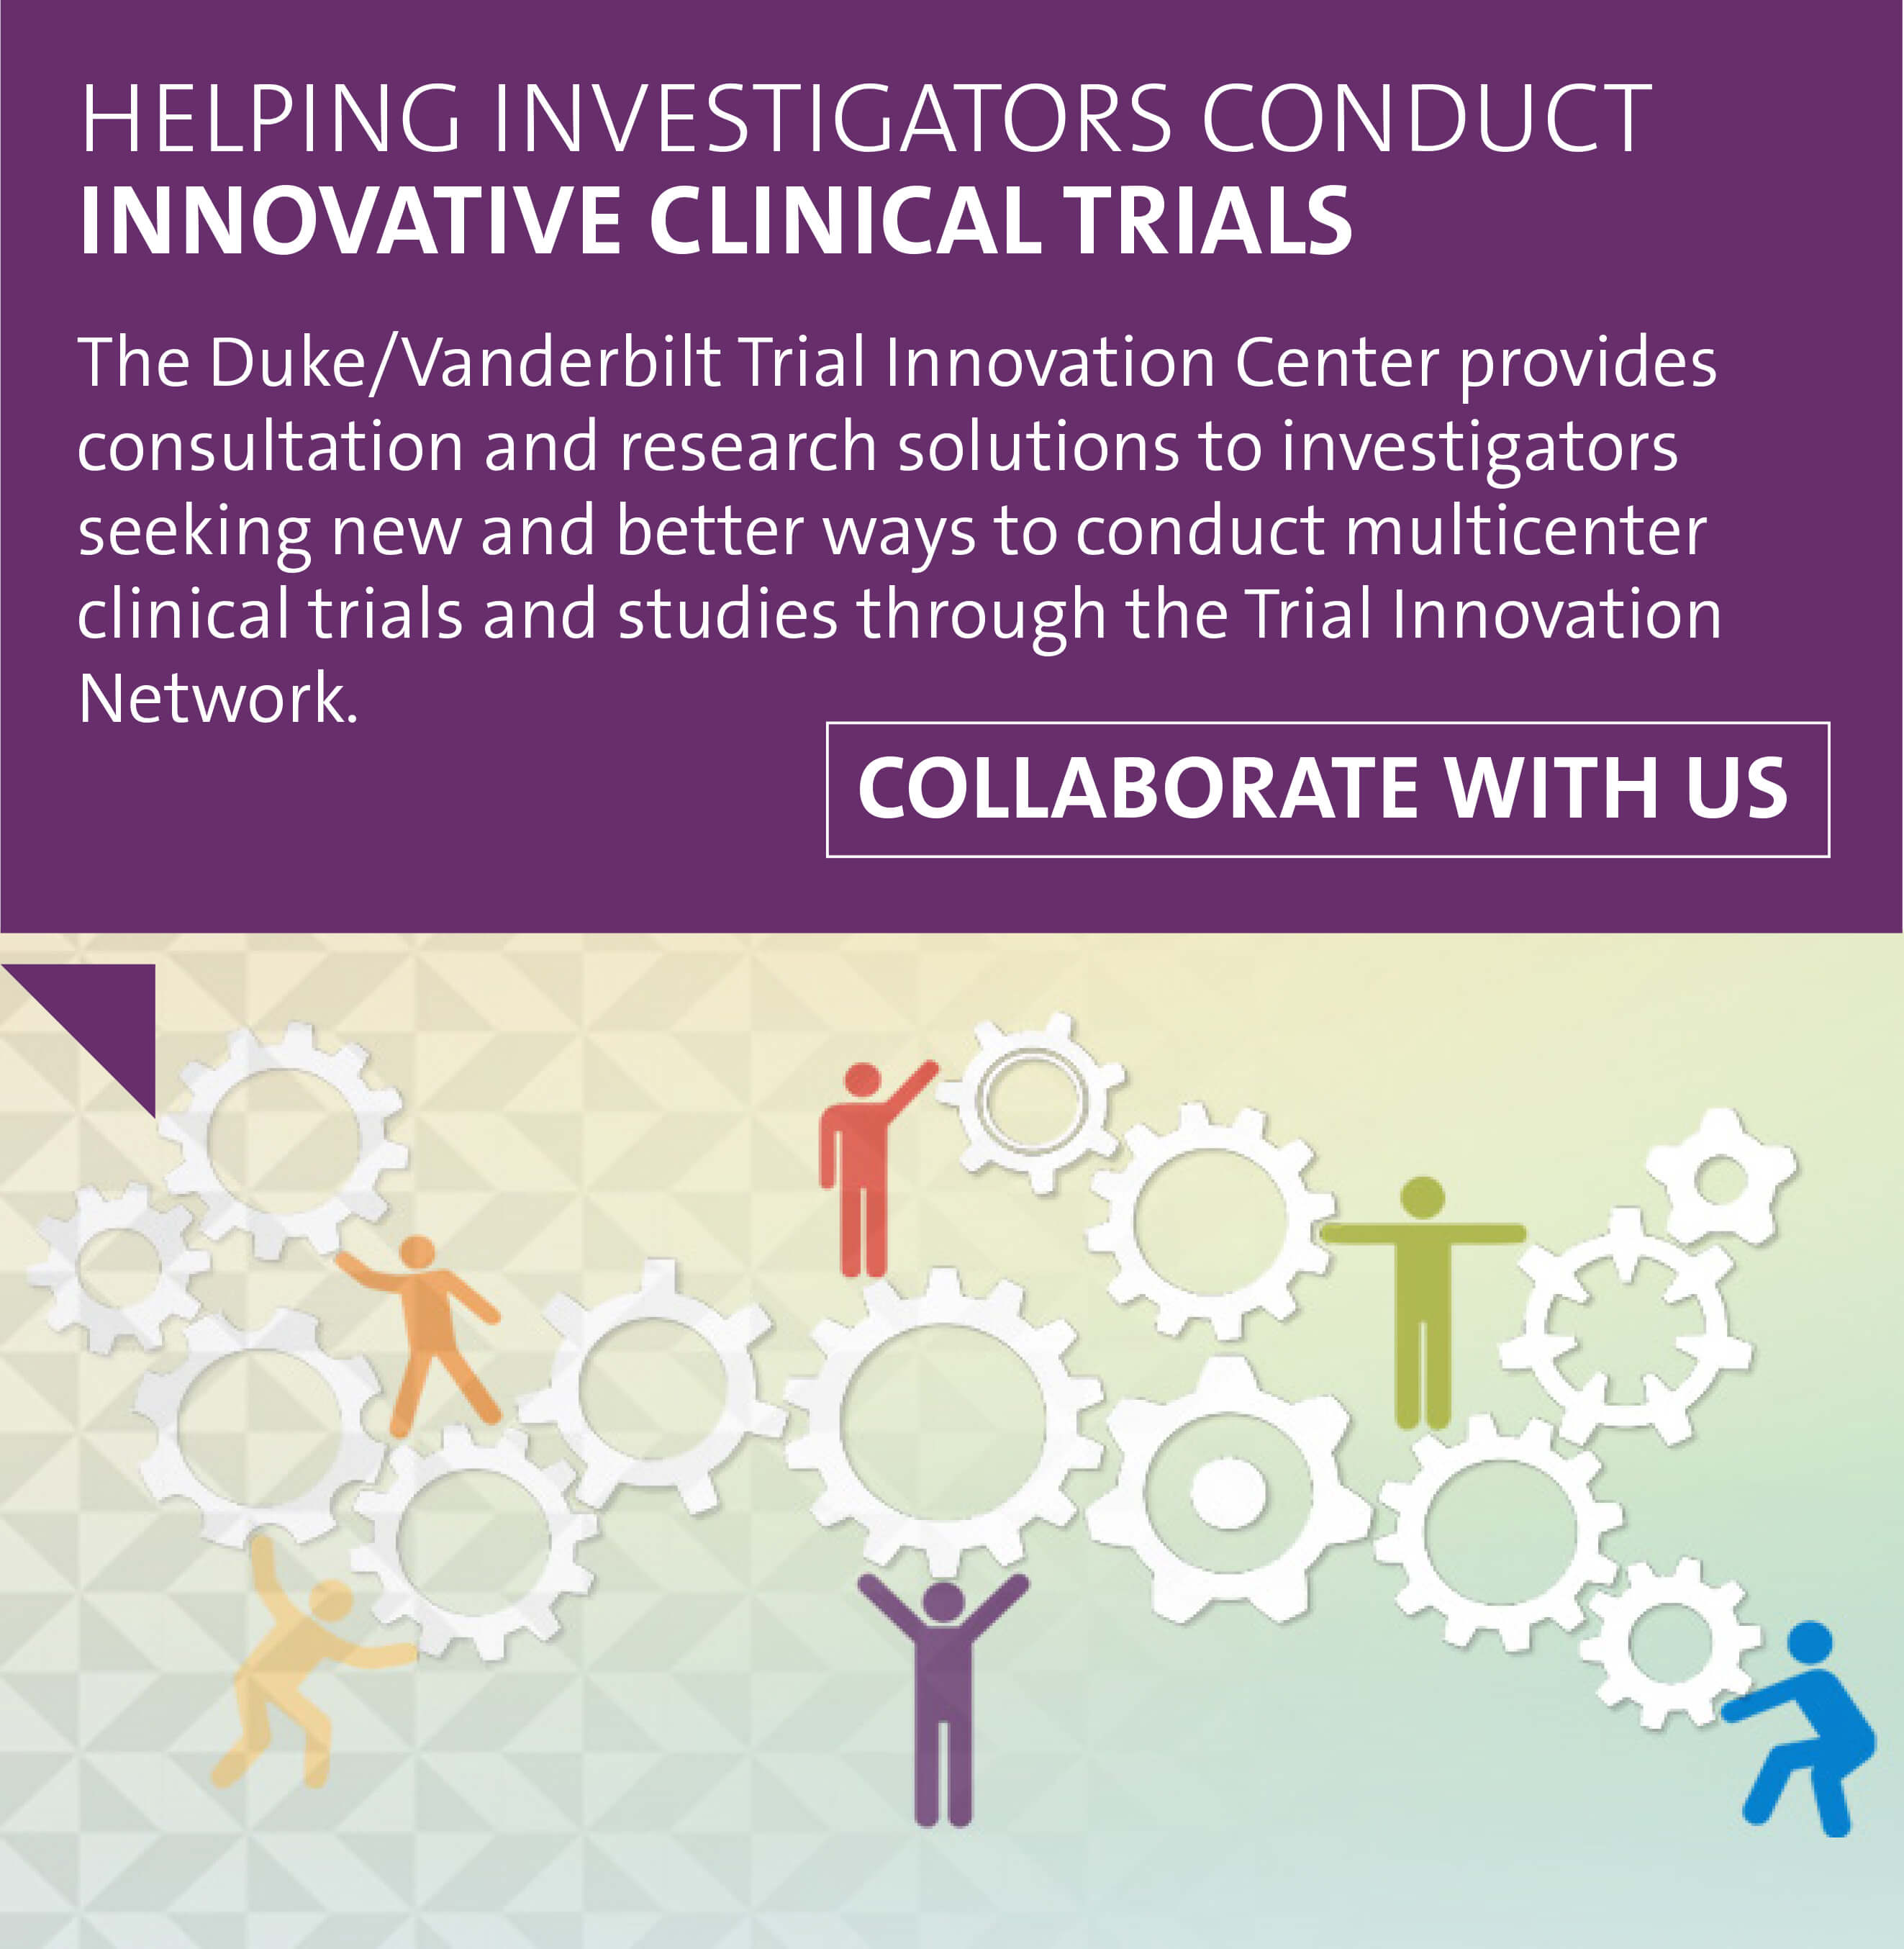 The Duke/Vanderbilt Trial Innovation Center provides consultation and research solutions to investigators seeking new and better ways to conduct multicenter clinical trials and studies through the Trial Innovation Network. Start collaborating with us.